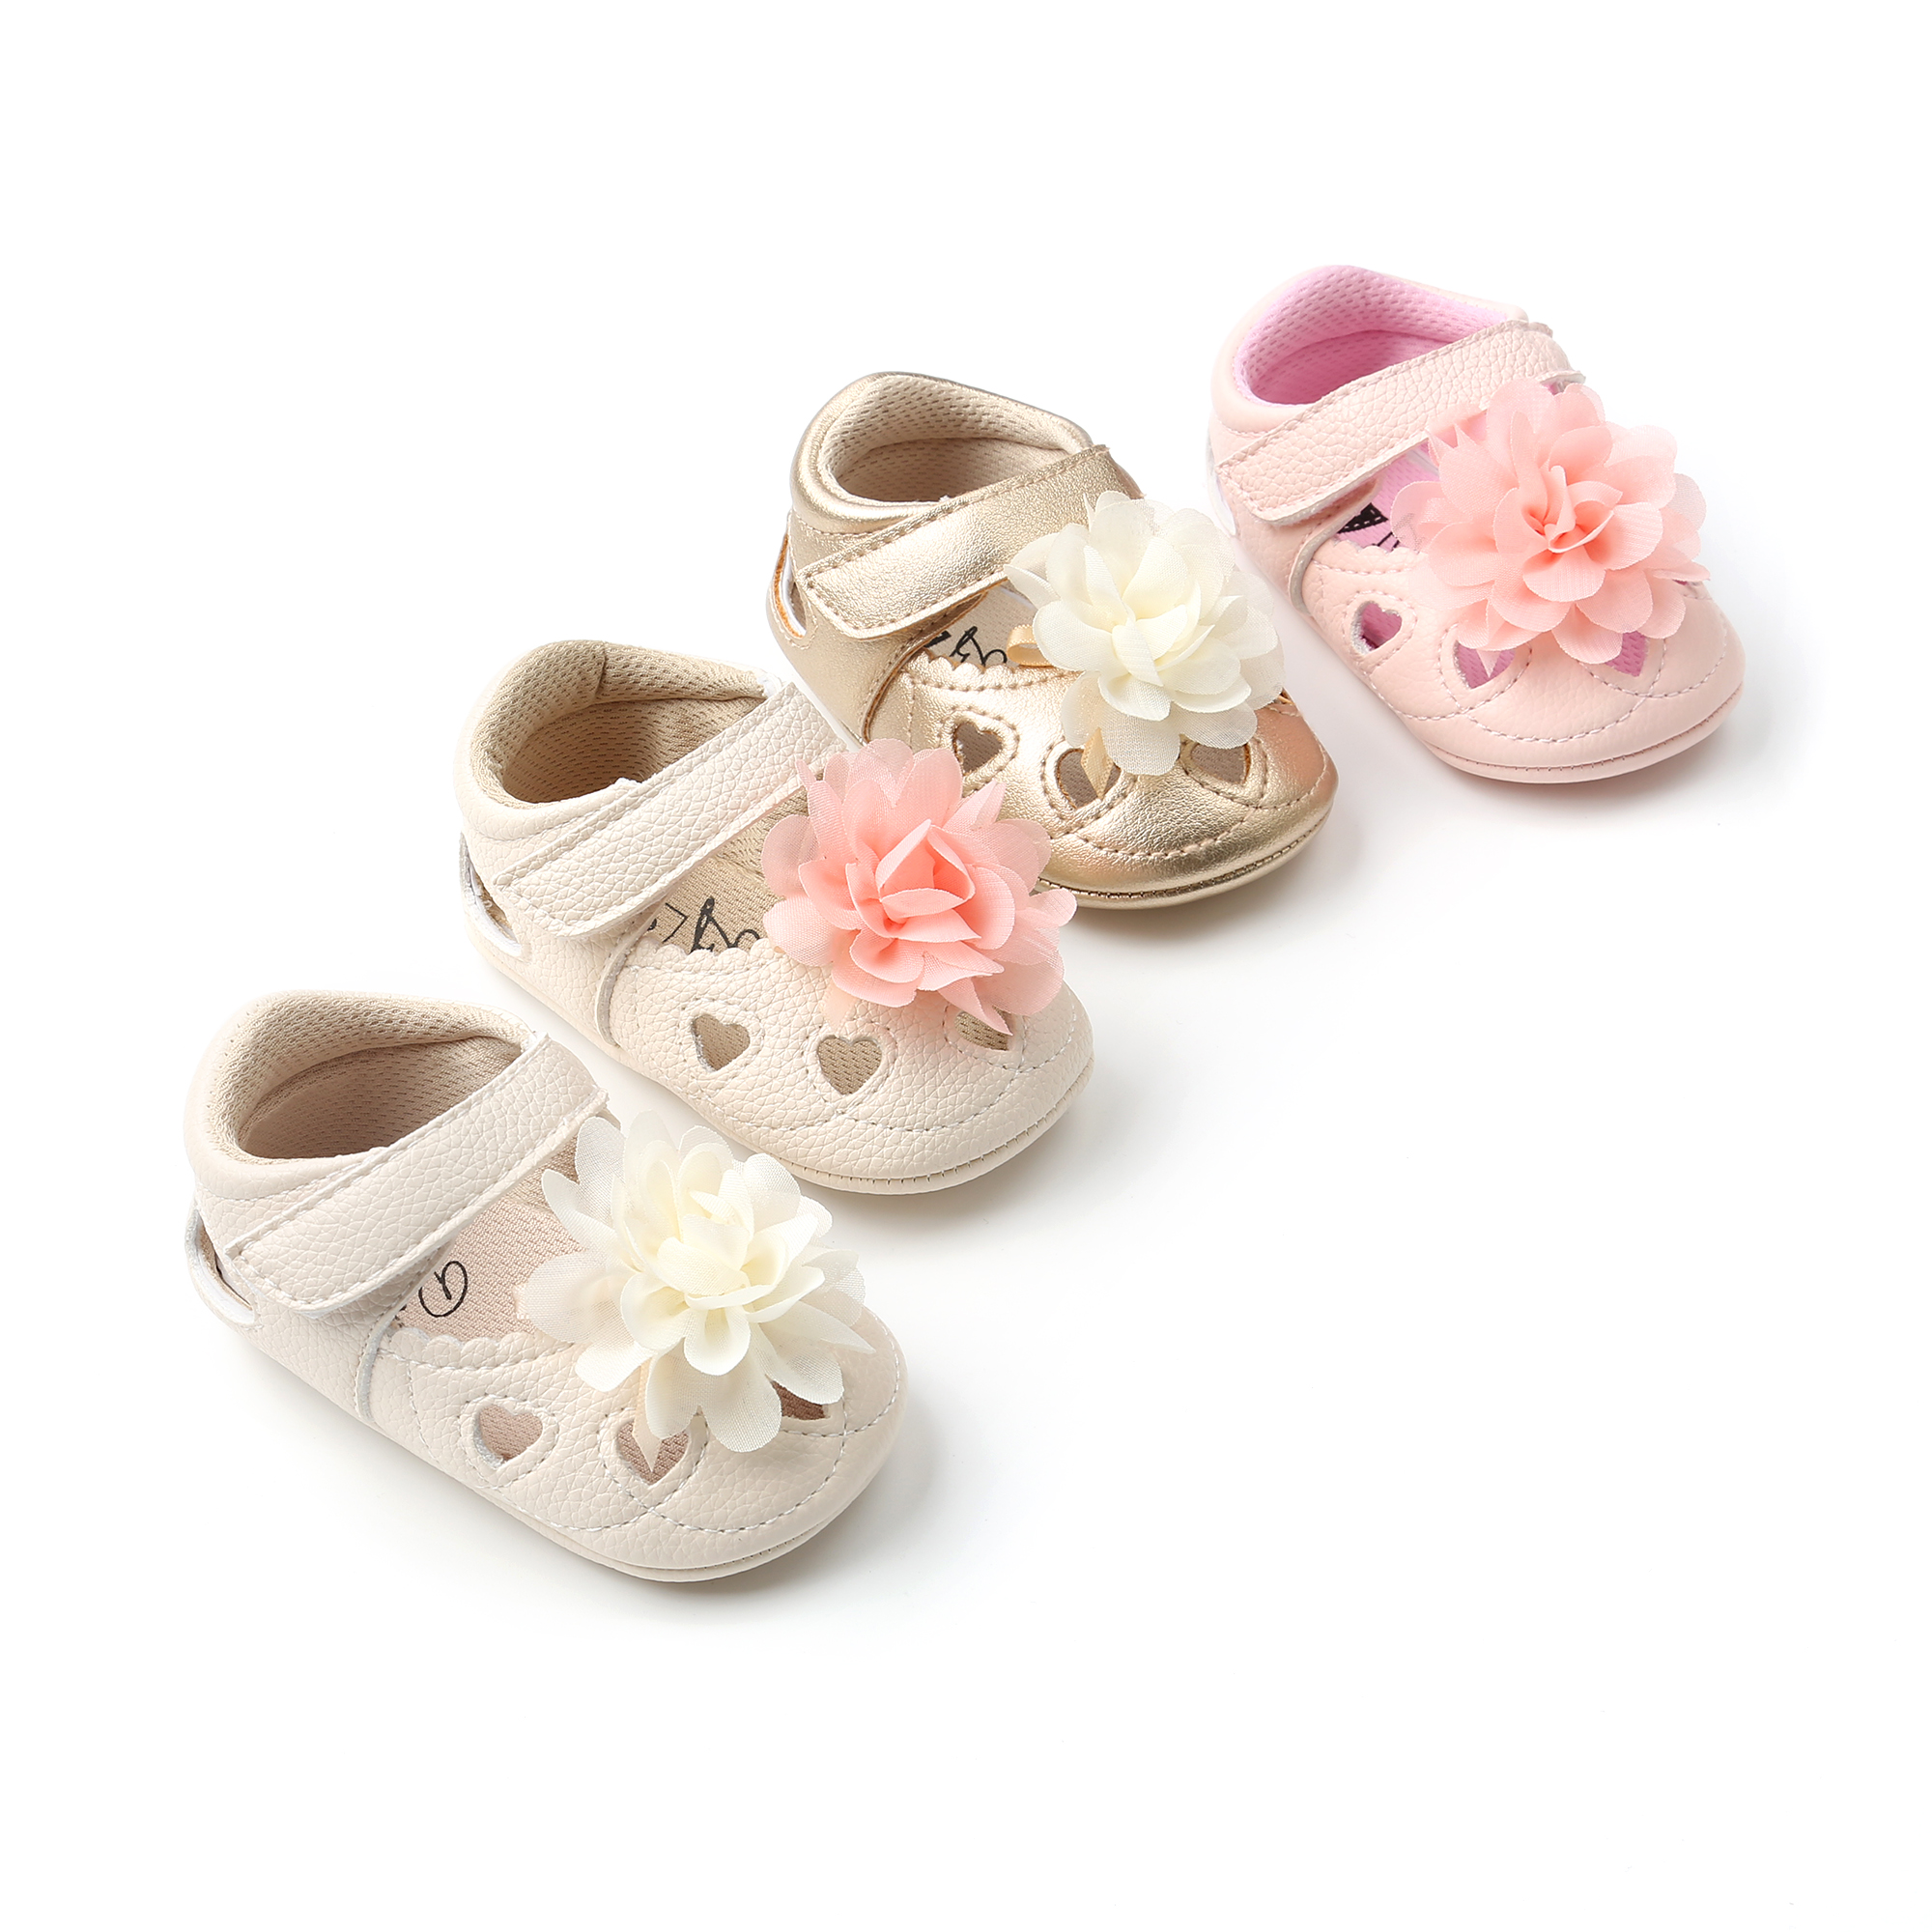 ROMIRUS 2018 New Summer Style Baby Girls First Walkers Cute Lace Flower Infant Girls Princess Shoes toddler shoes